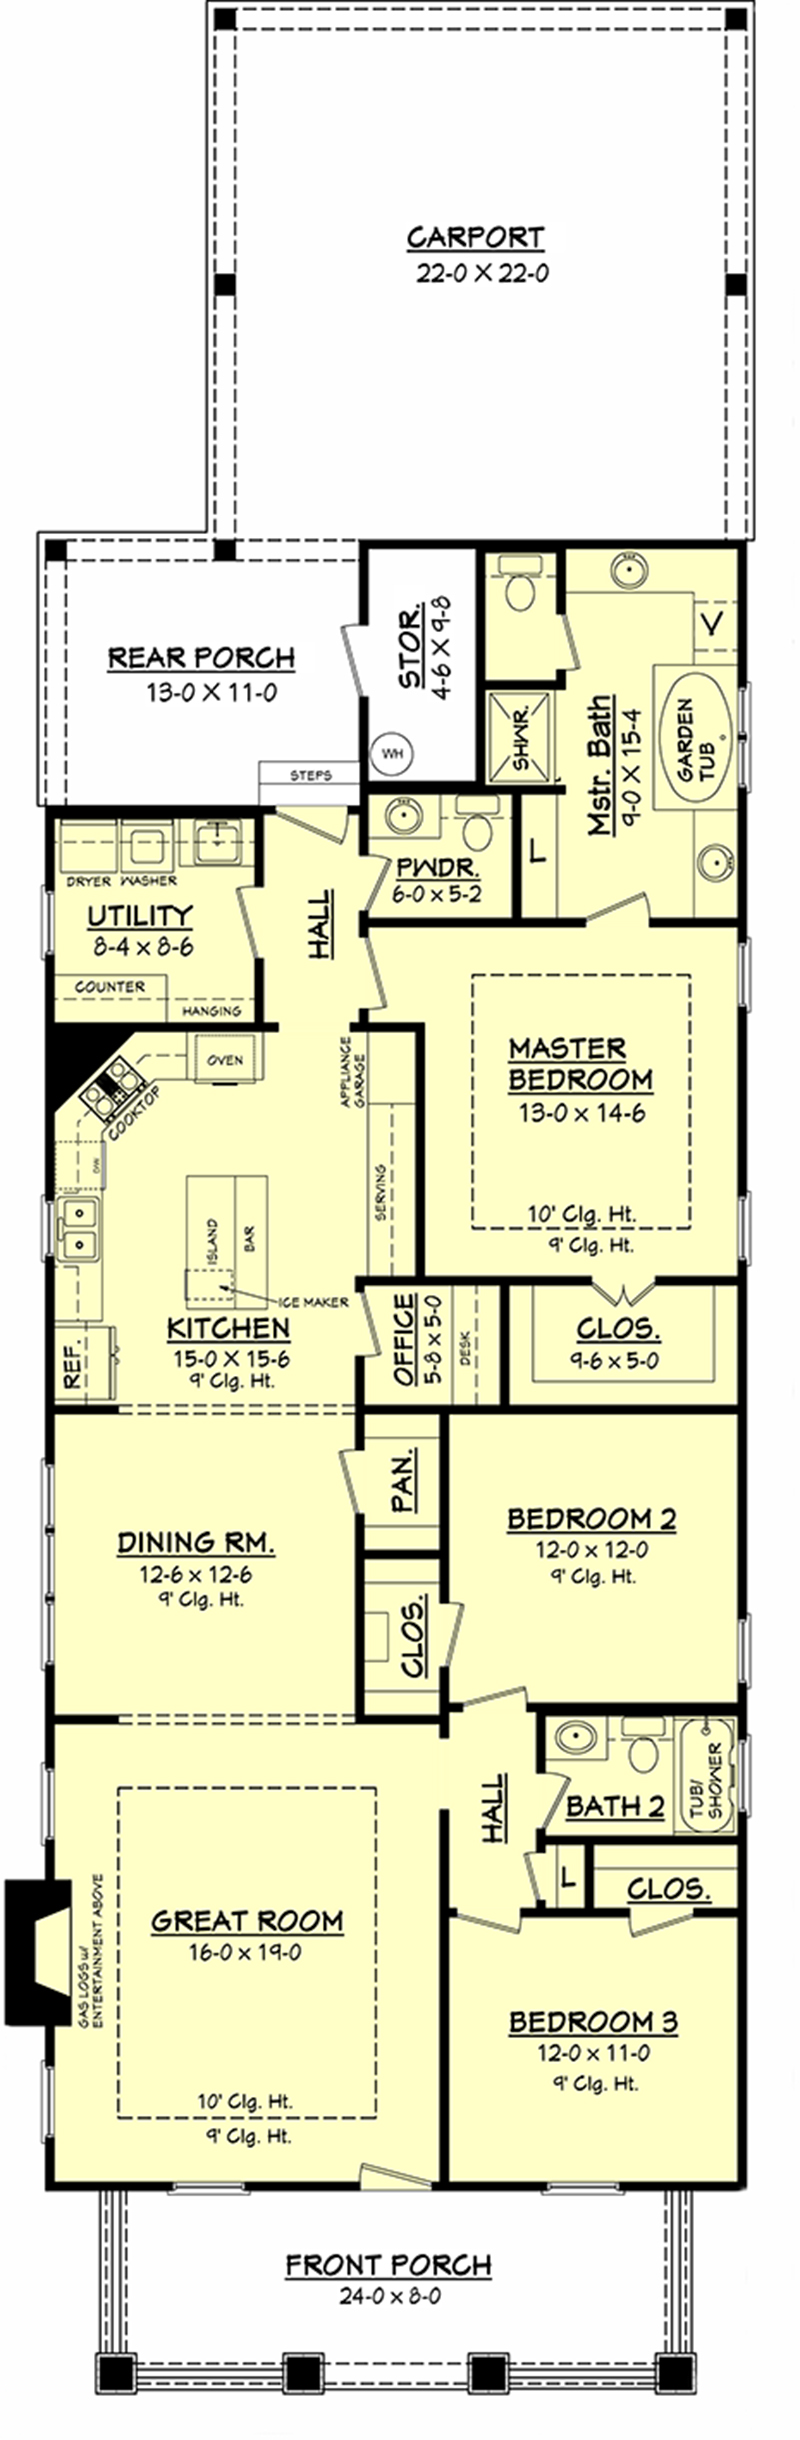 House plan 142 1079 3 bdrm 2 1 2 bath 1800 sq ft cottage home plan Story floor plans with garage collection